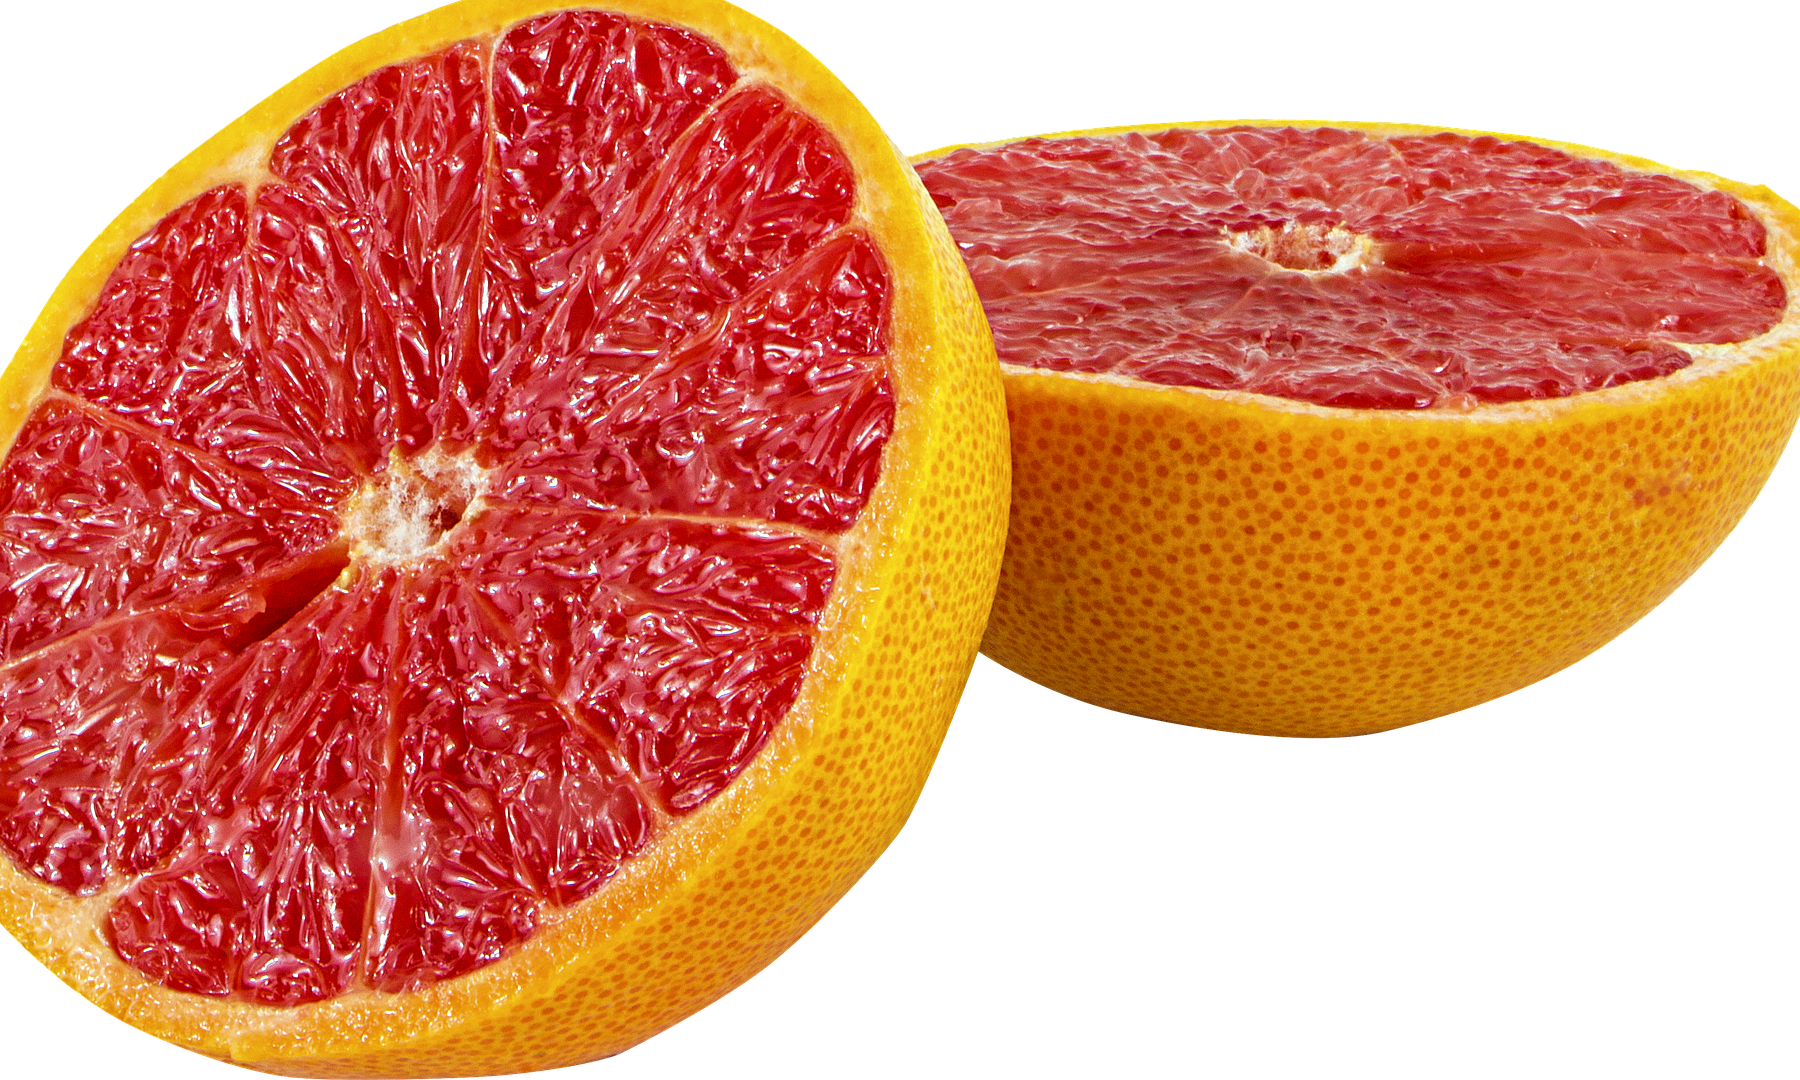 SA Star Ruby grapefruit back on South Korean shelves